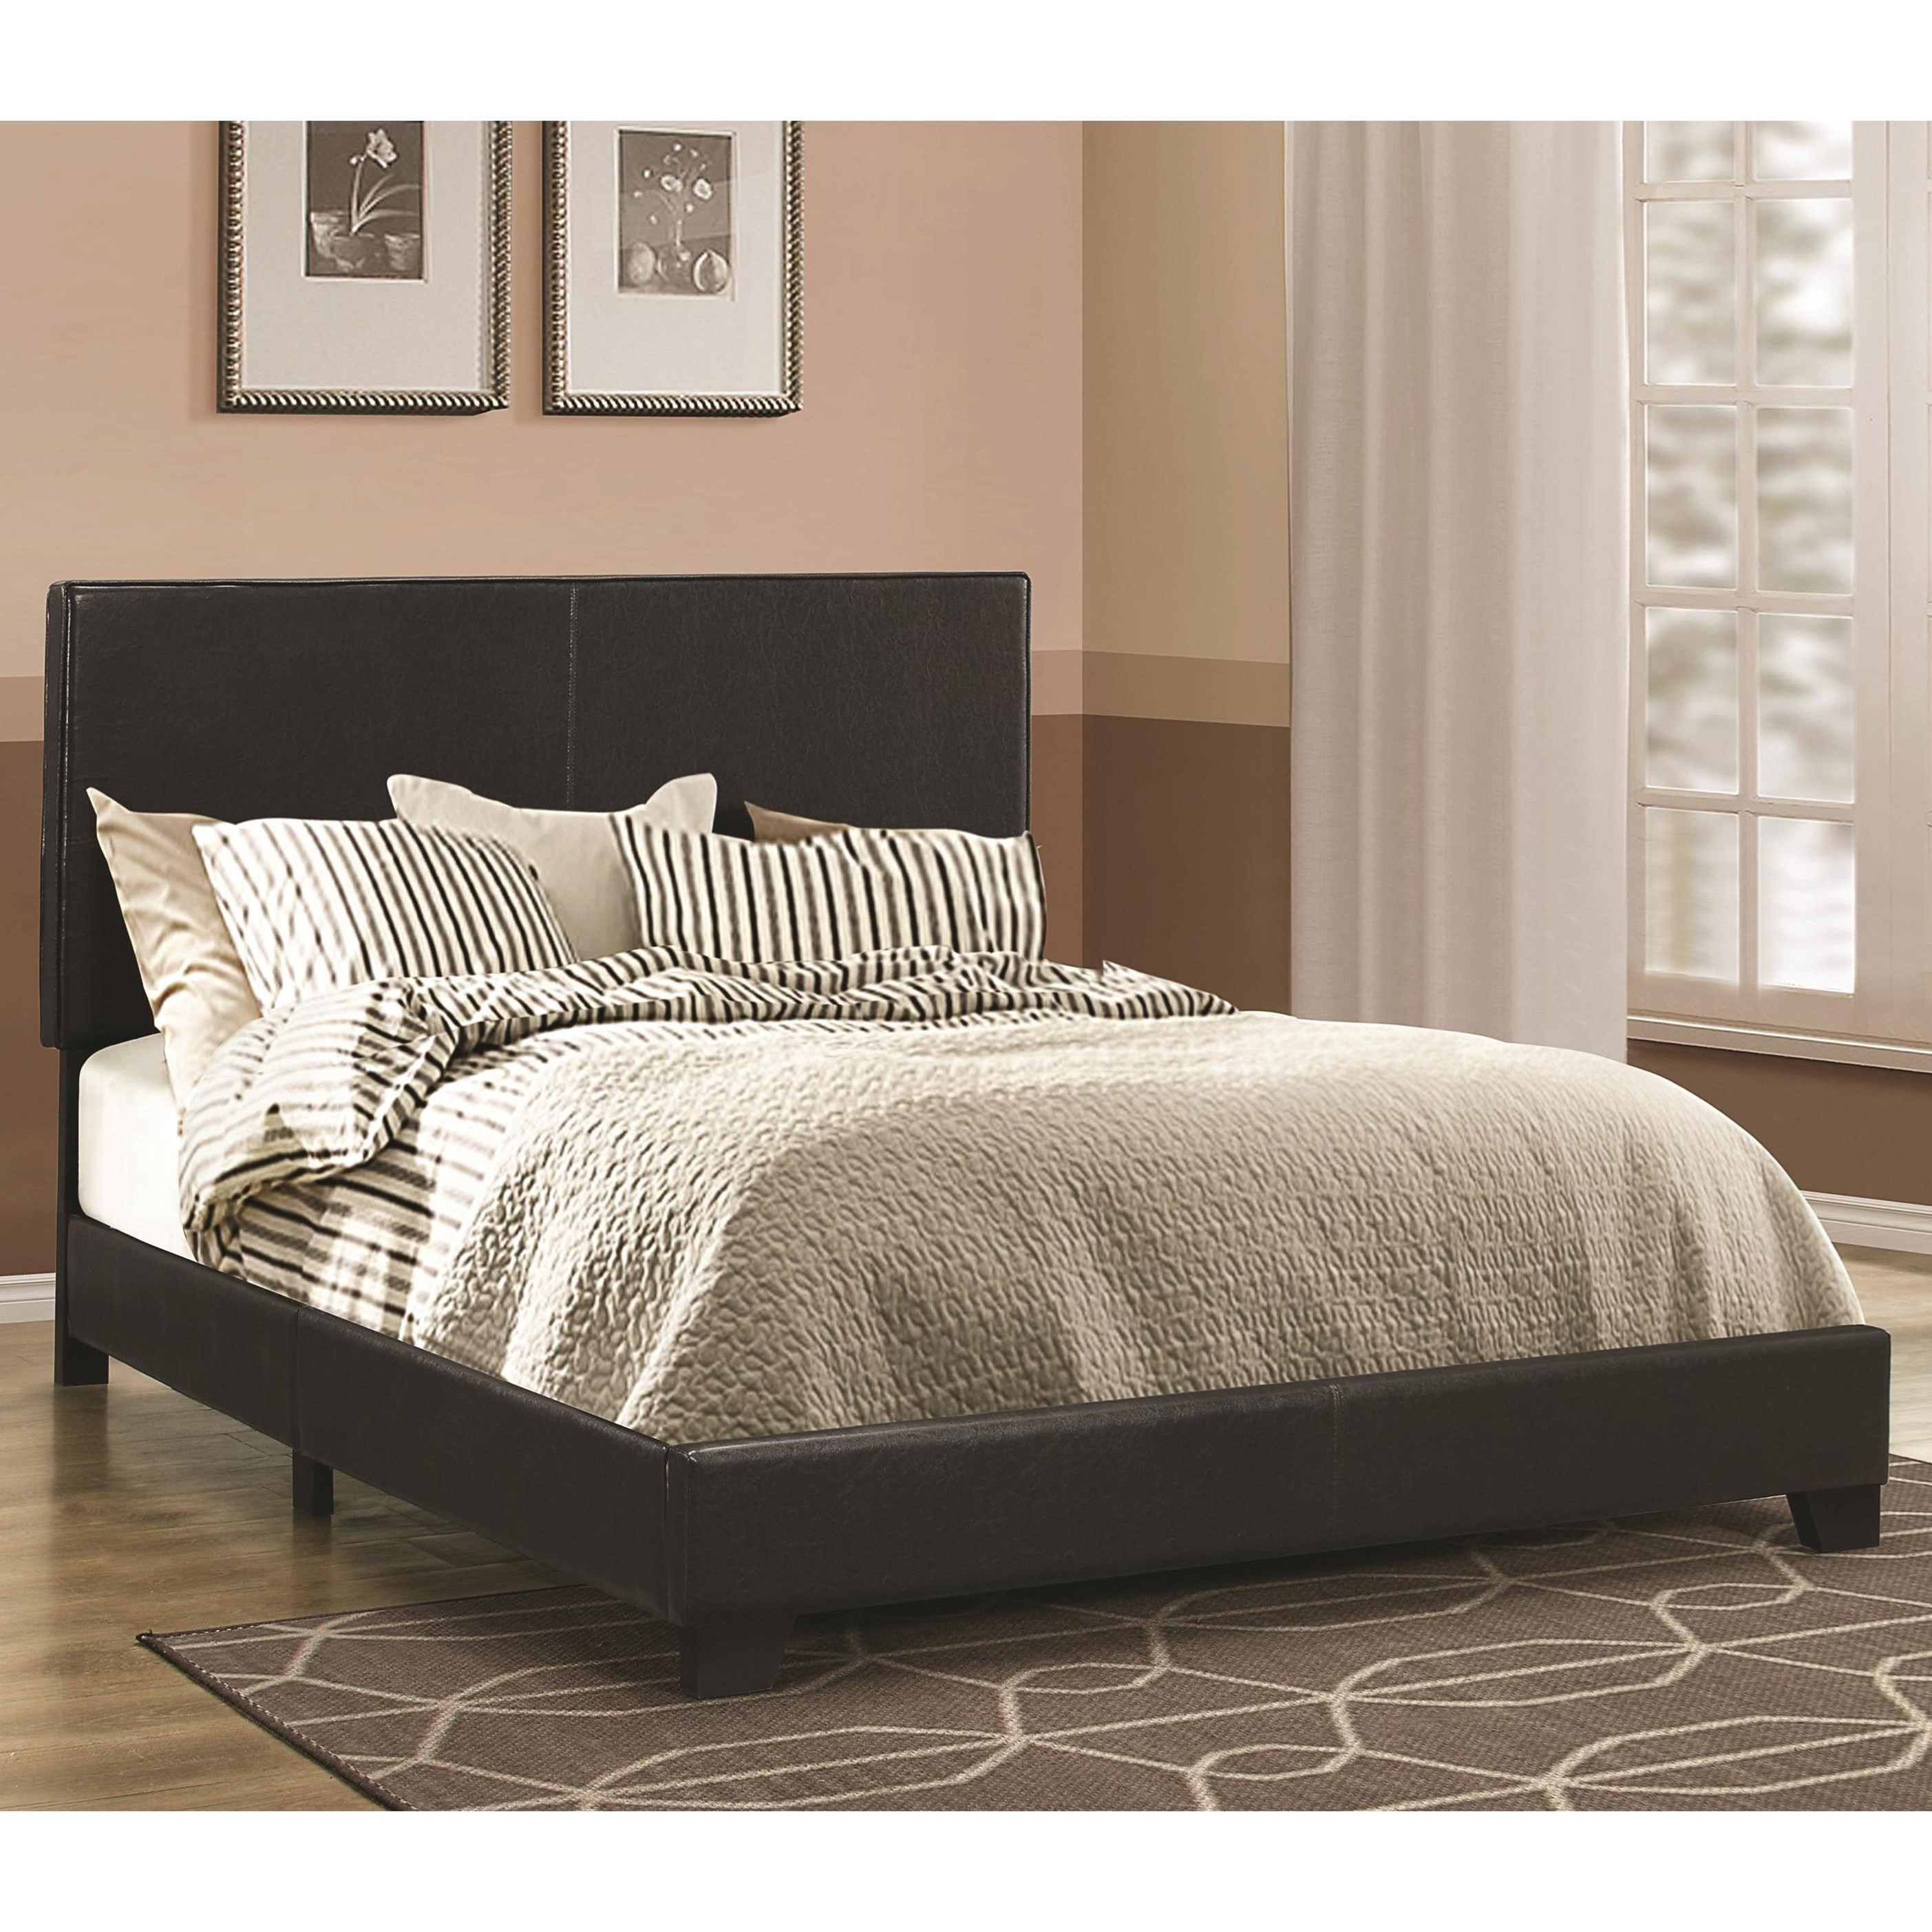 Dorian Black King Bed by Coaster at Northeast Factory Direct